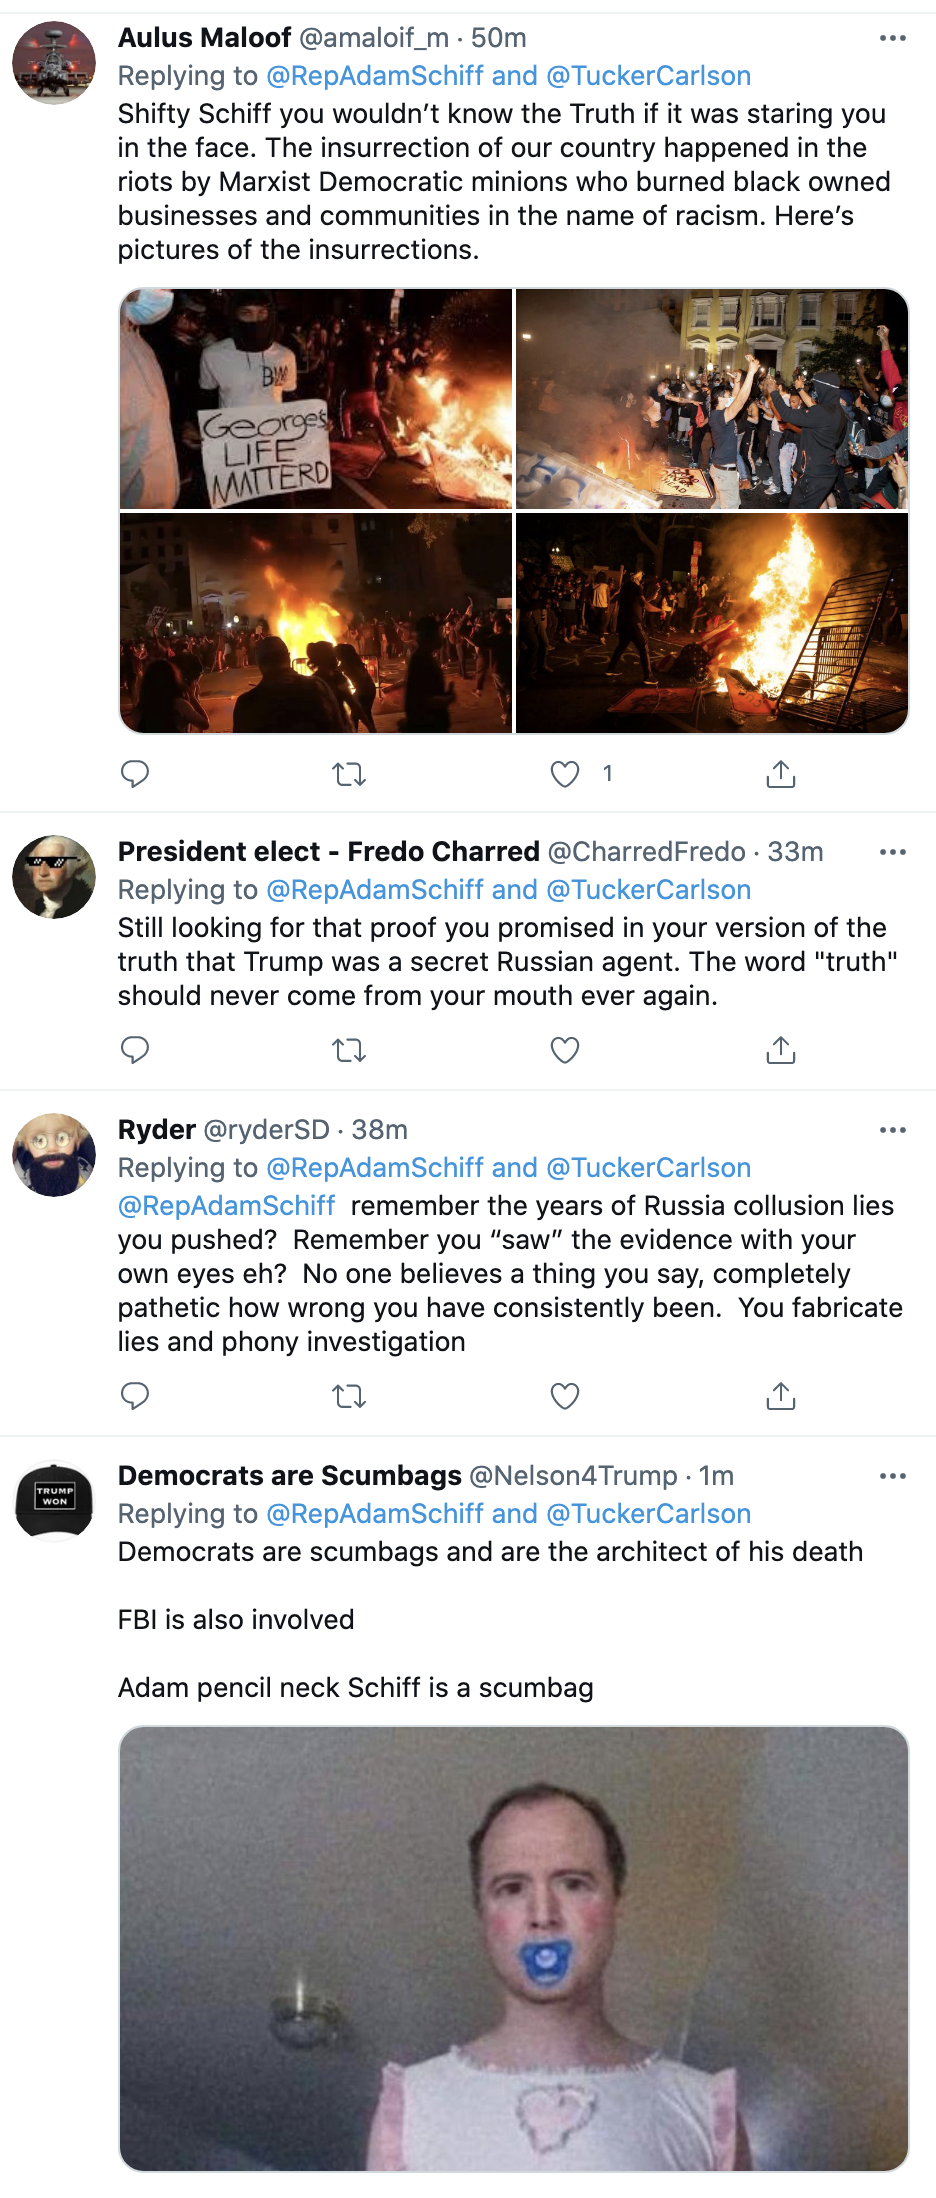 Screen-Shot-2021-07-23-at-10.12.37-AM Adam Schiff Comes After Tucker Carlson For Being Anti-Police Black Lives Matter Featured National Security Politics Top Stories